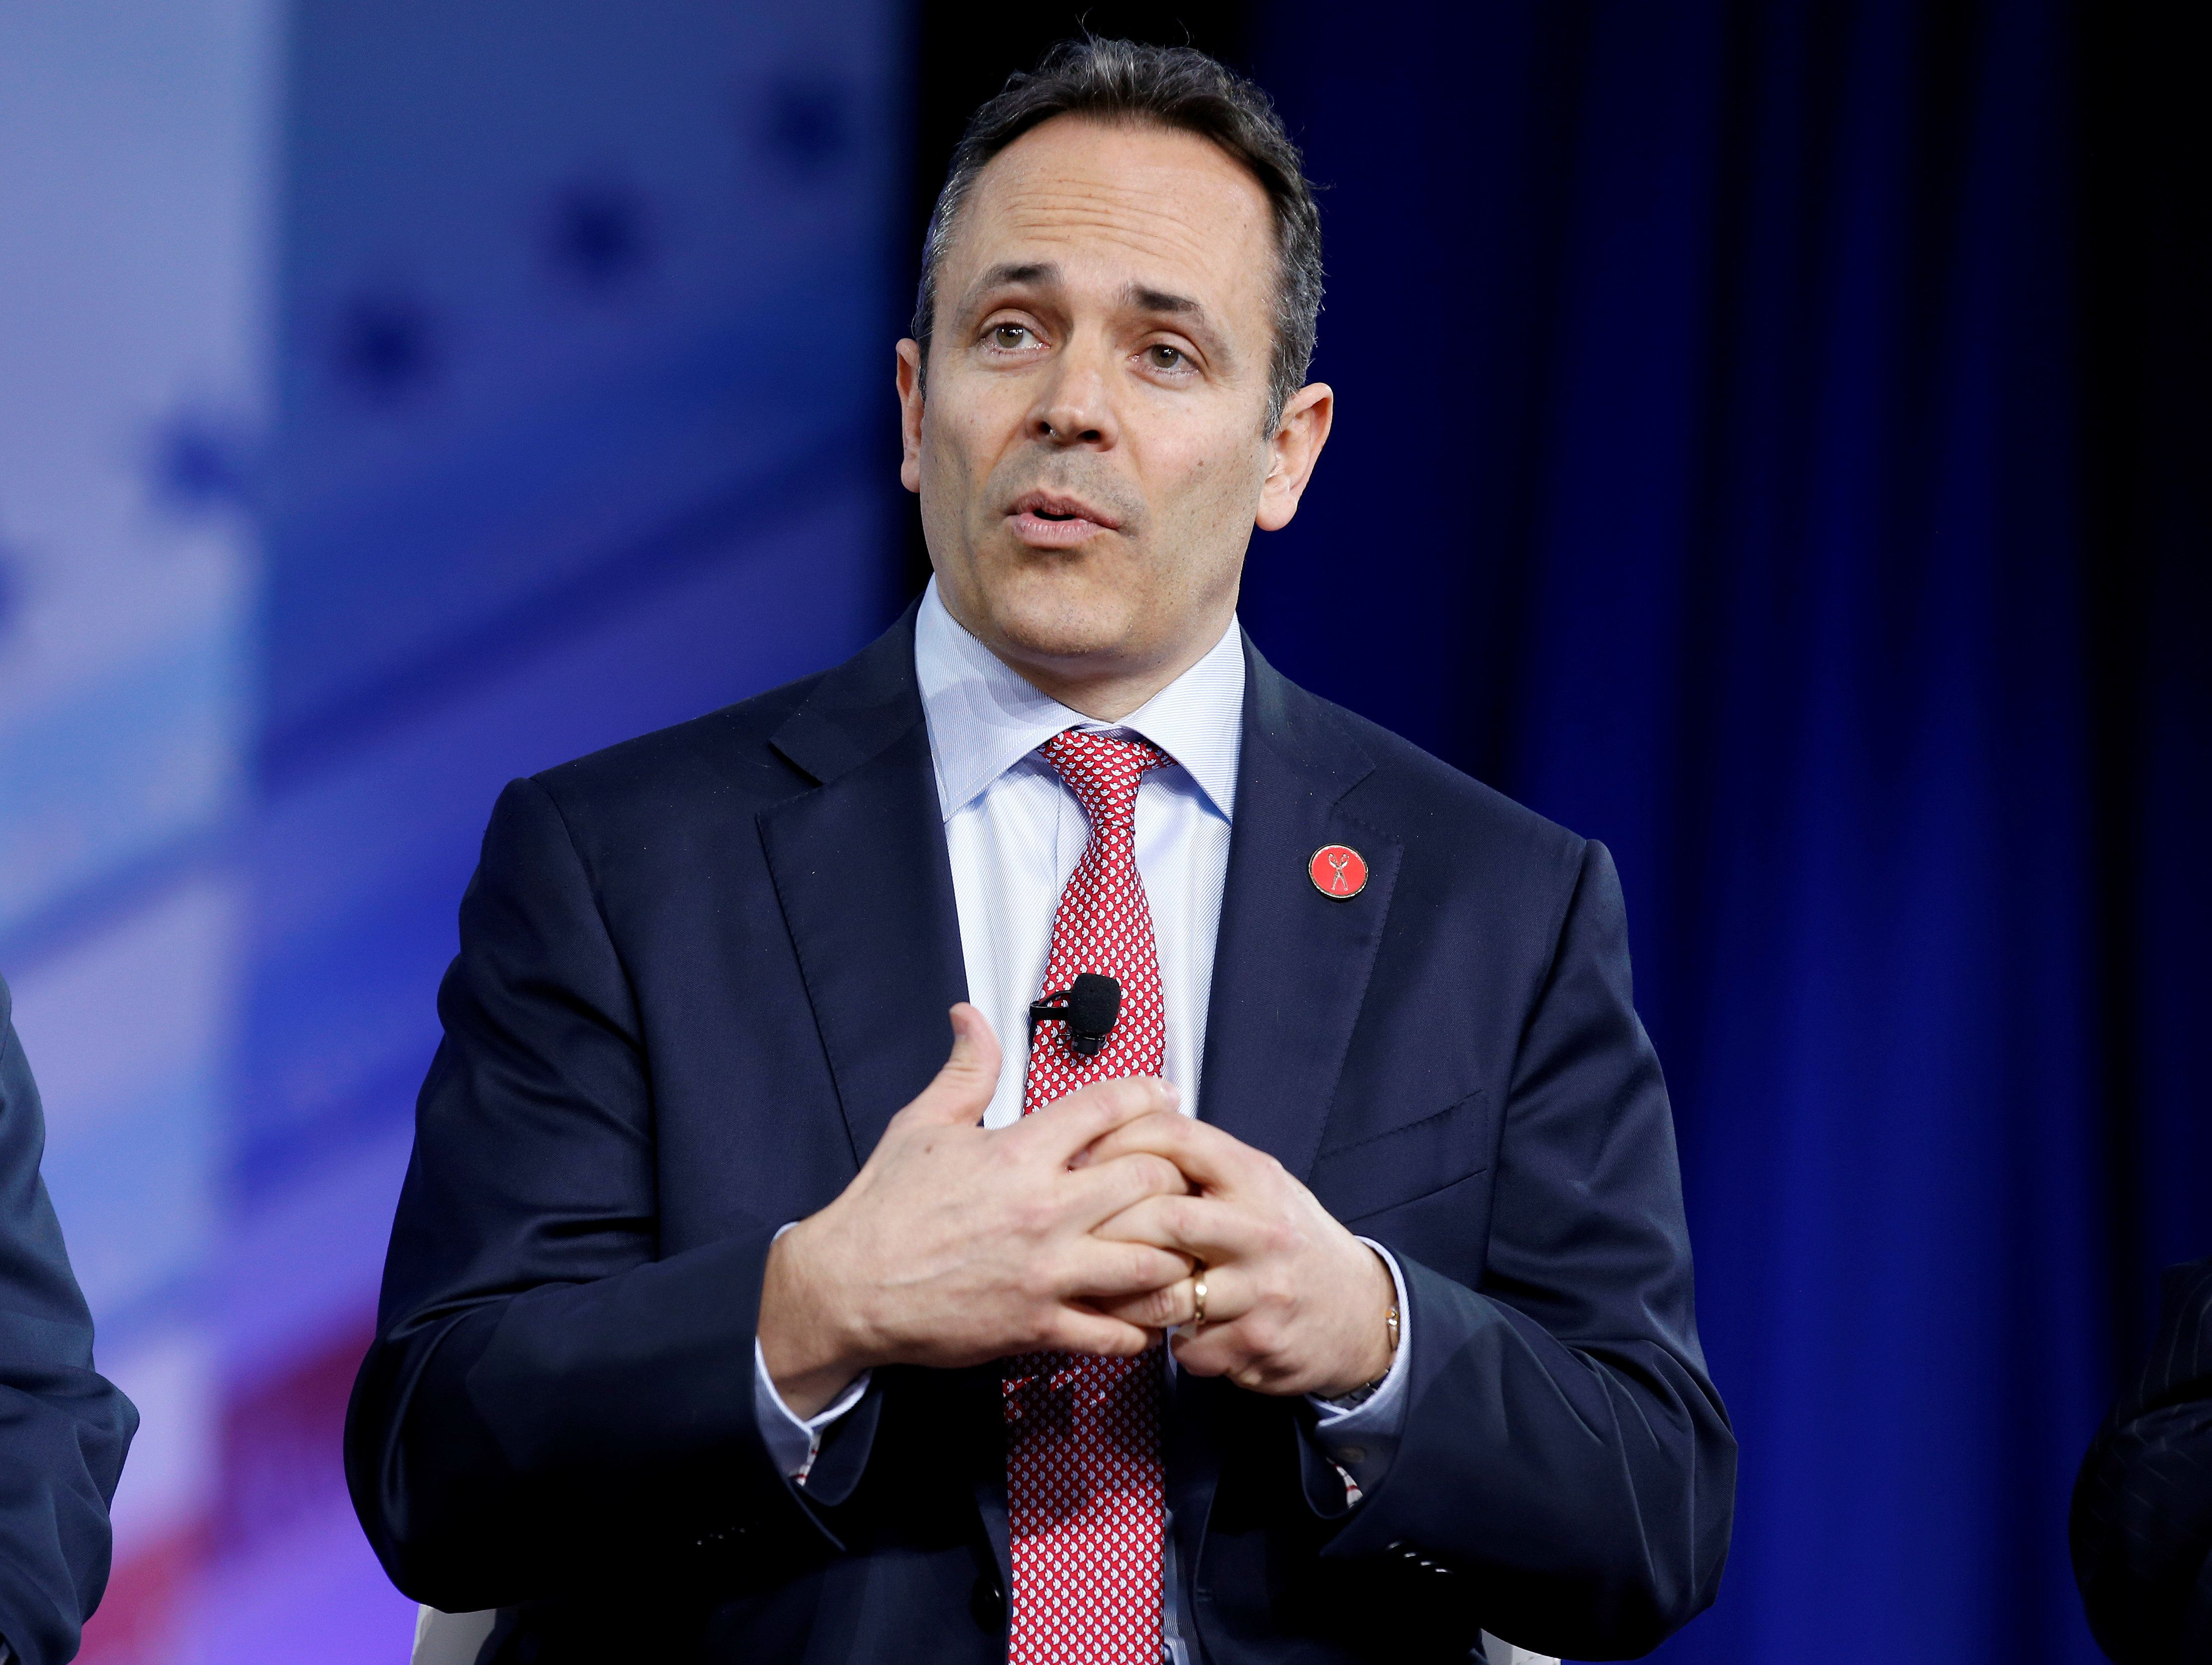 Kentucky Gov. Matt Bevin's attacks on reporters increasingly seem to be mimicking the language used by President Donald